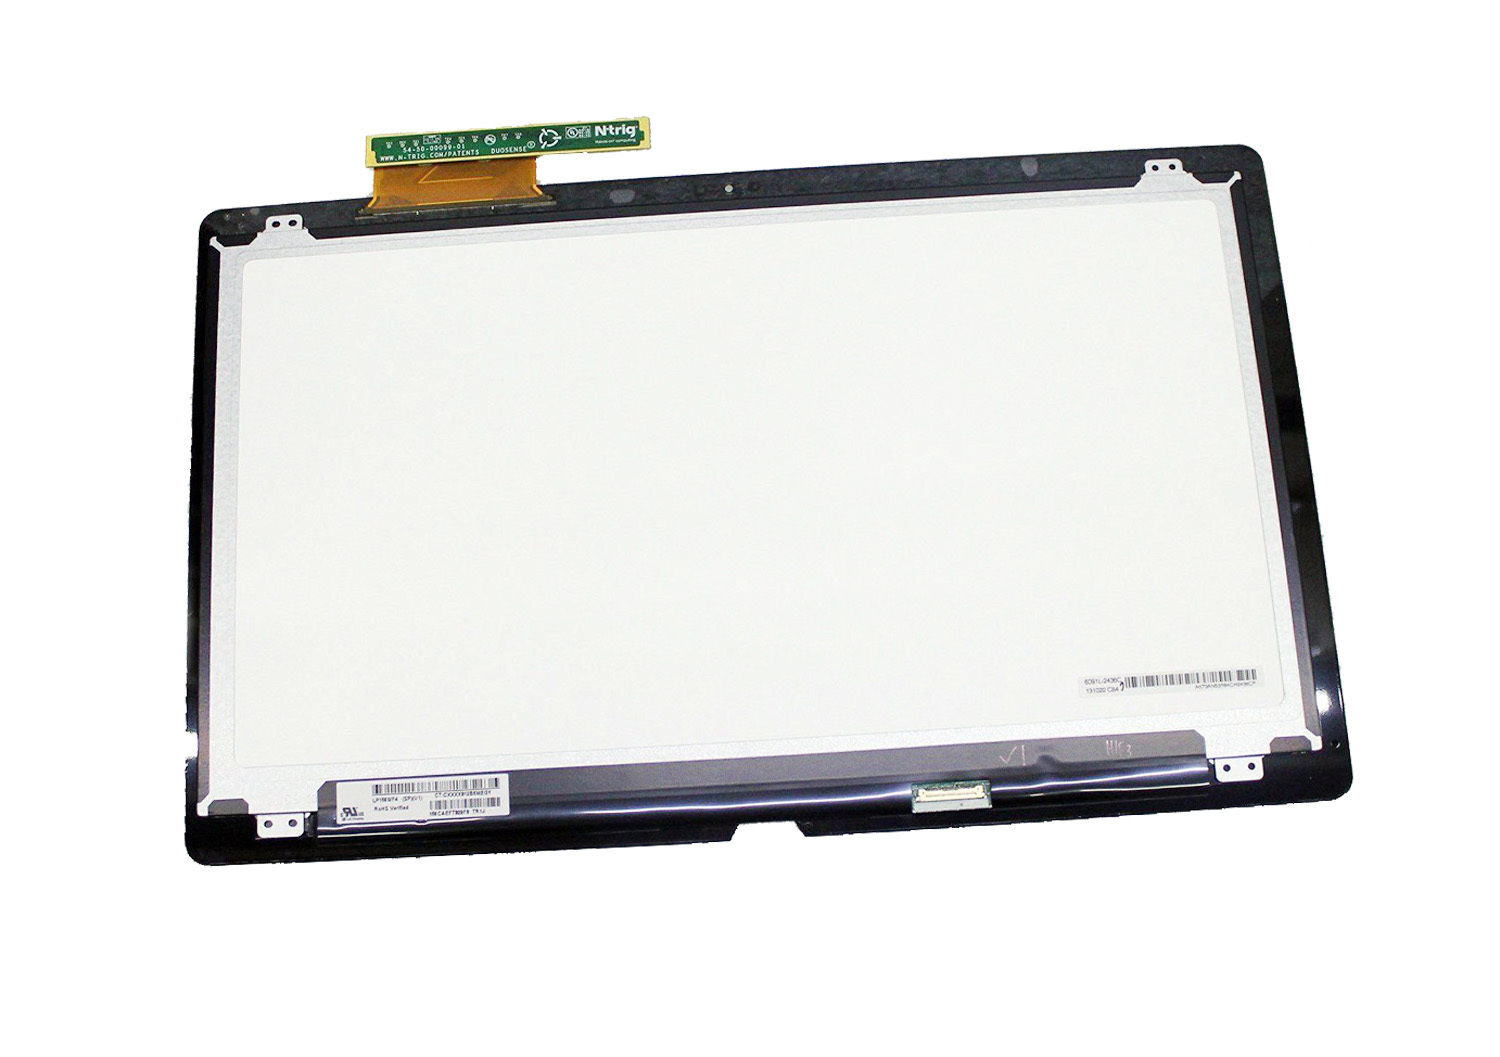 1920*1080 FHD LCD Display Touch Screen Assembly For Sony Vaio Fit  SVF15N SVF15NB1GL SVF15N17CXB1920*1080 FHD LCD Display Touch Screen Assembly For Sony Vaio Fit  SVF15N SVF15NB1GL SVF15N17CXB